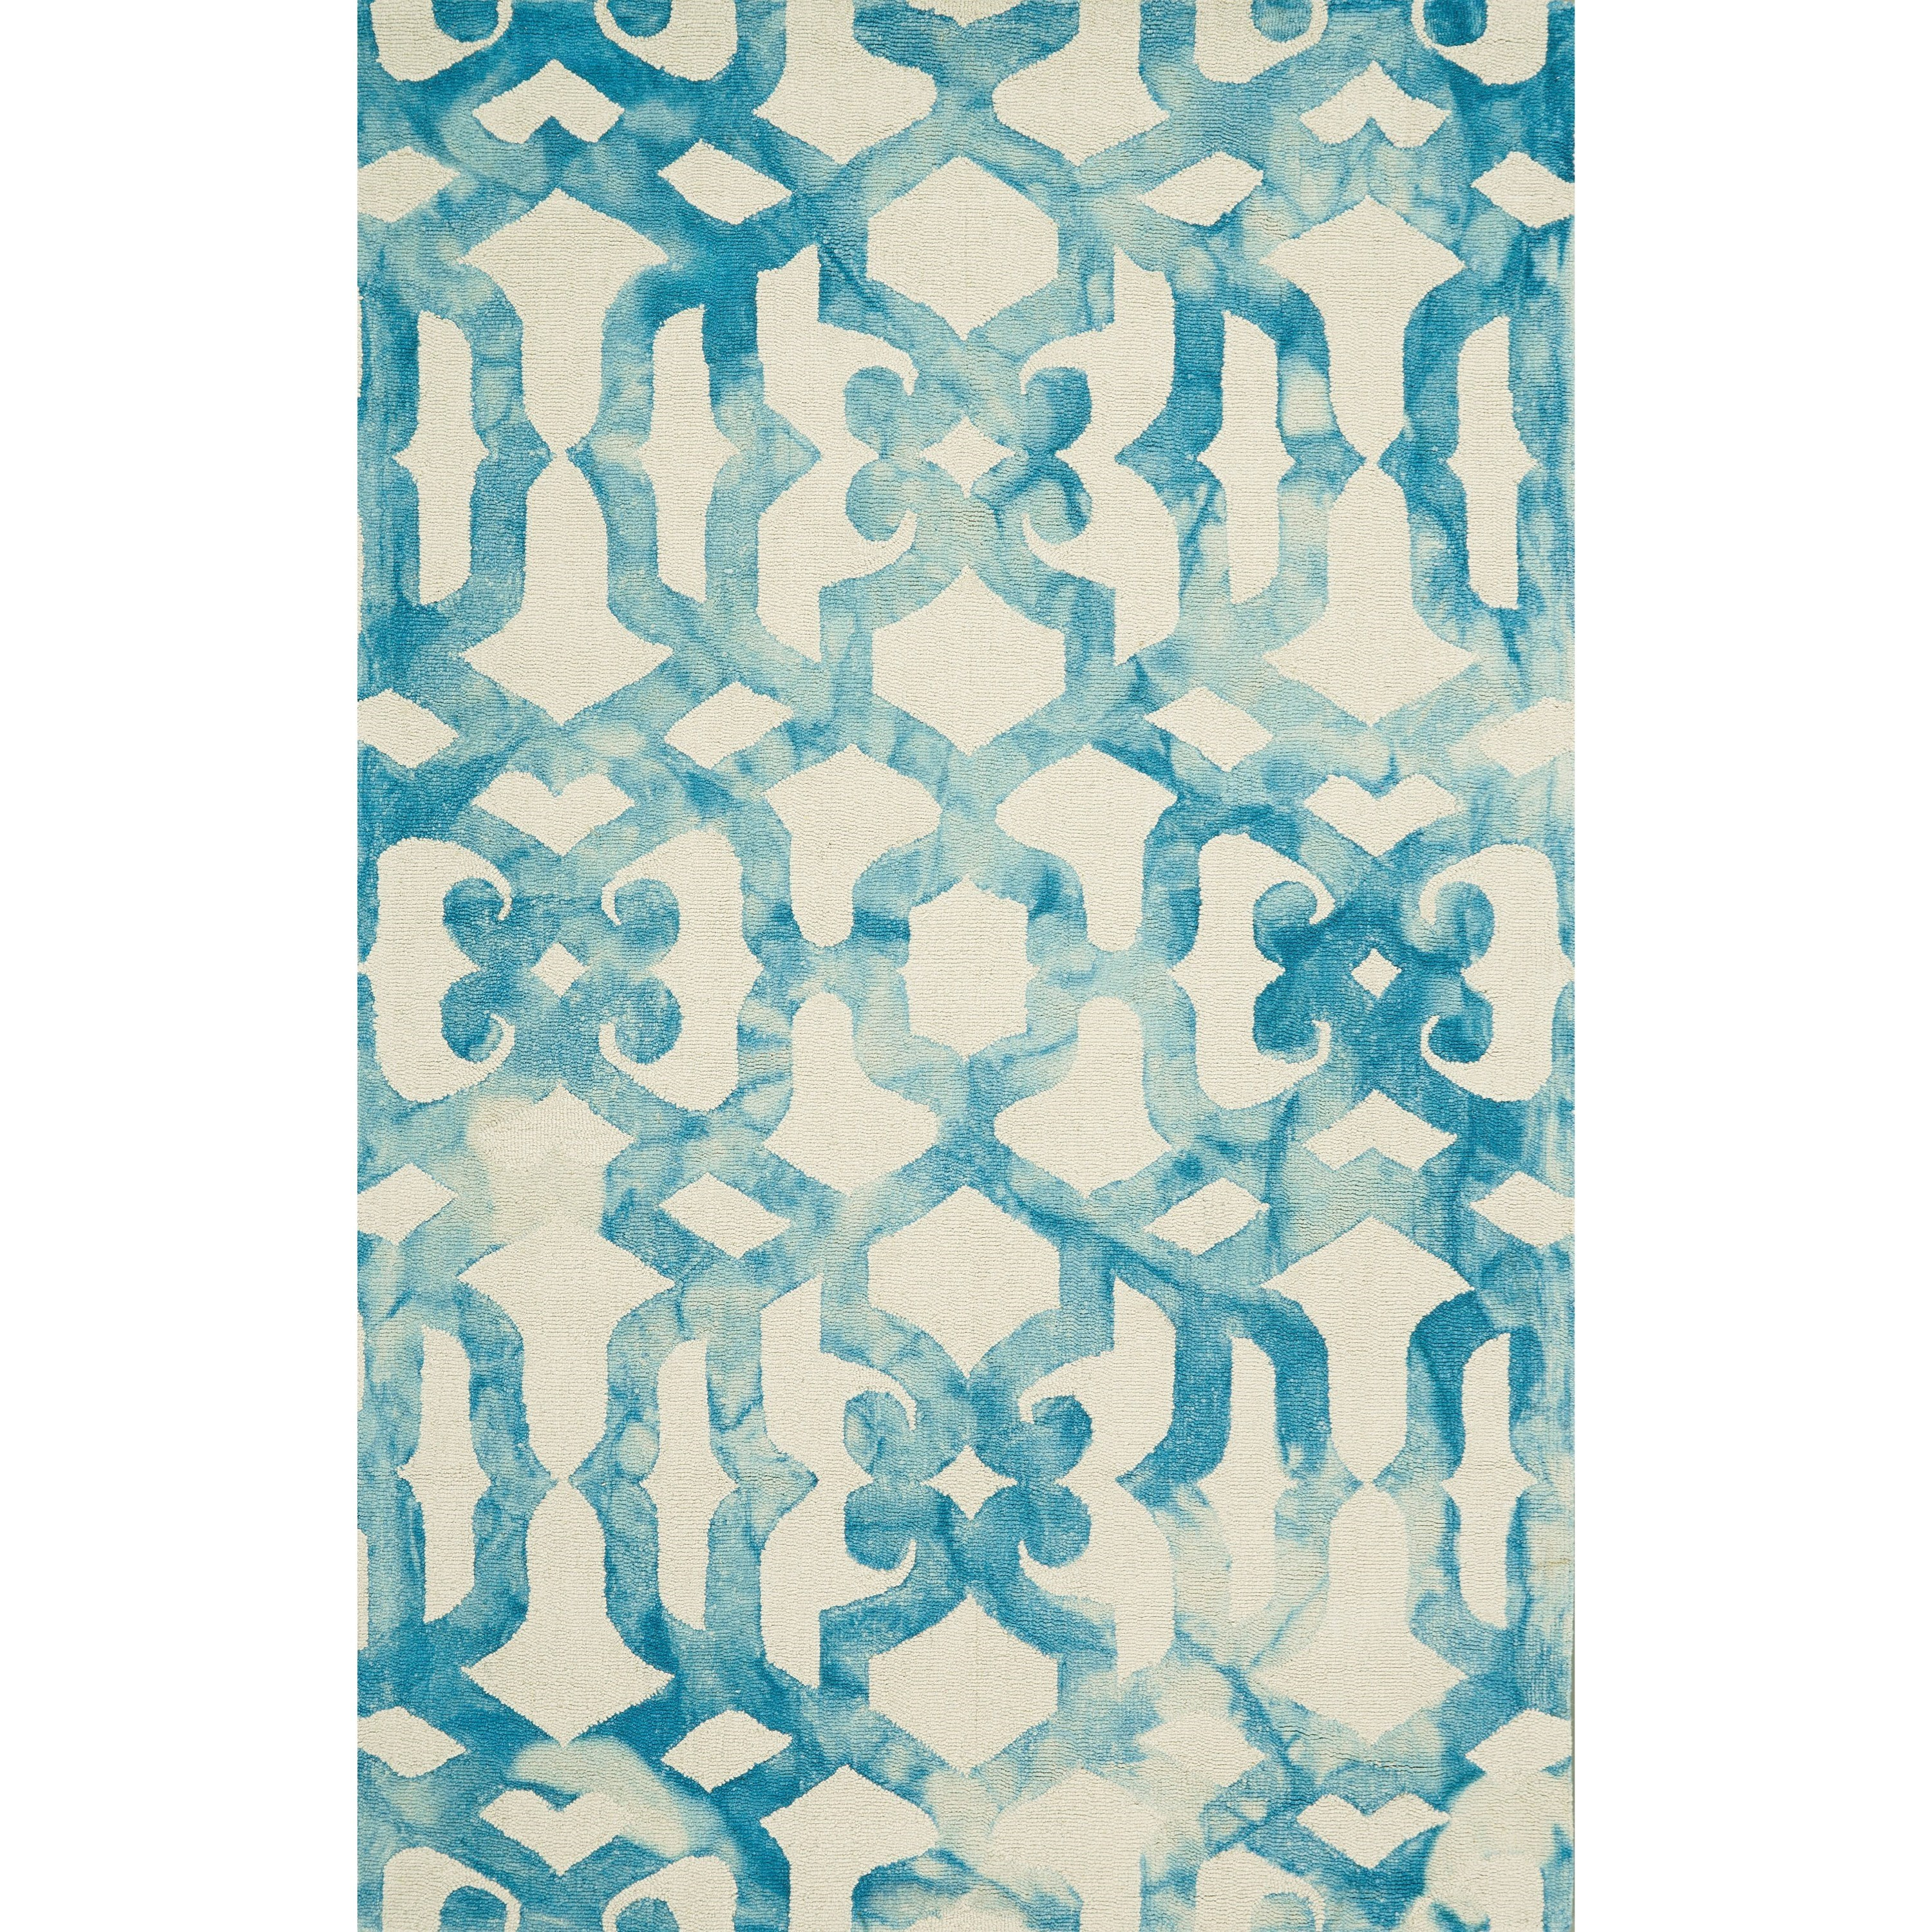 Lorrain Ocean 5' x 8' Area Rug by Feizy Rugs at Sprintz Furniture